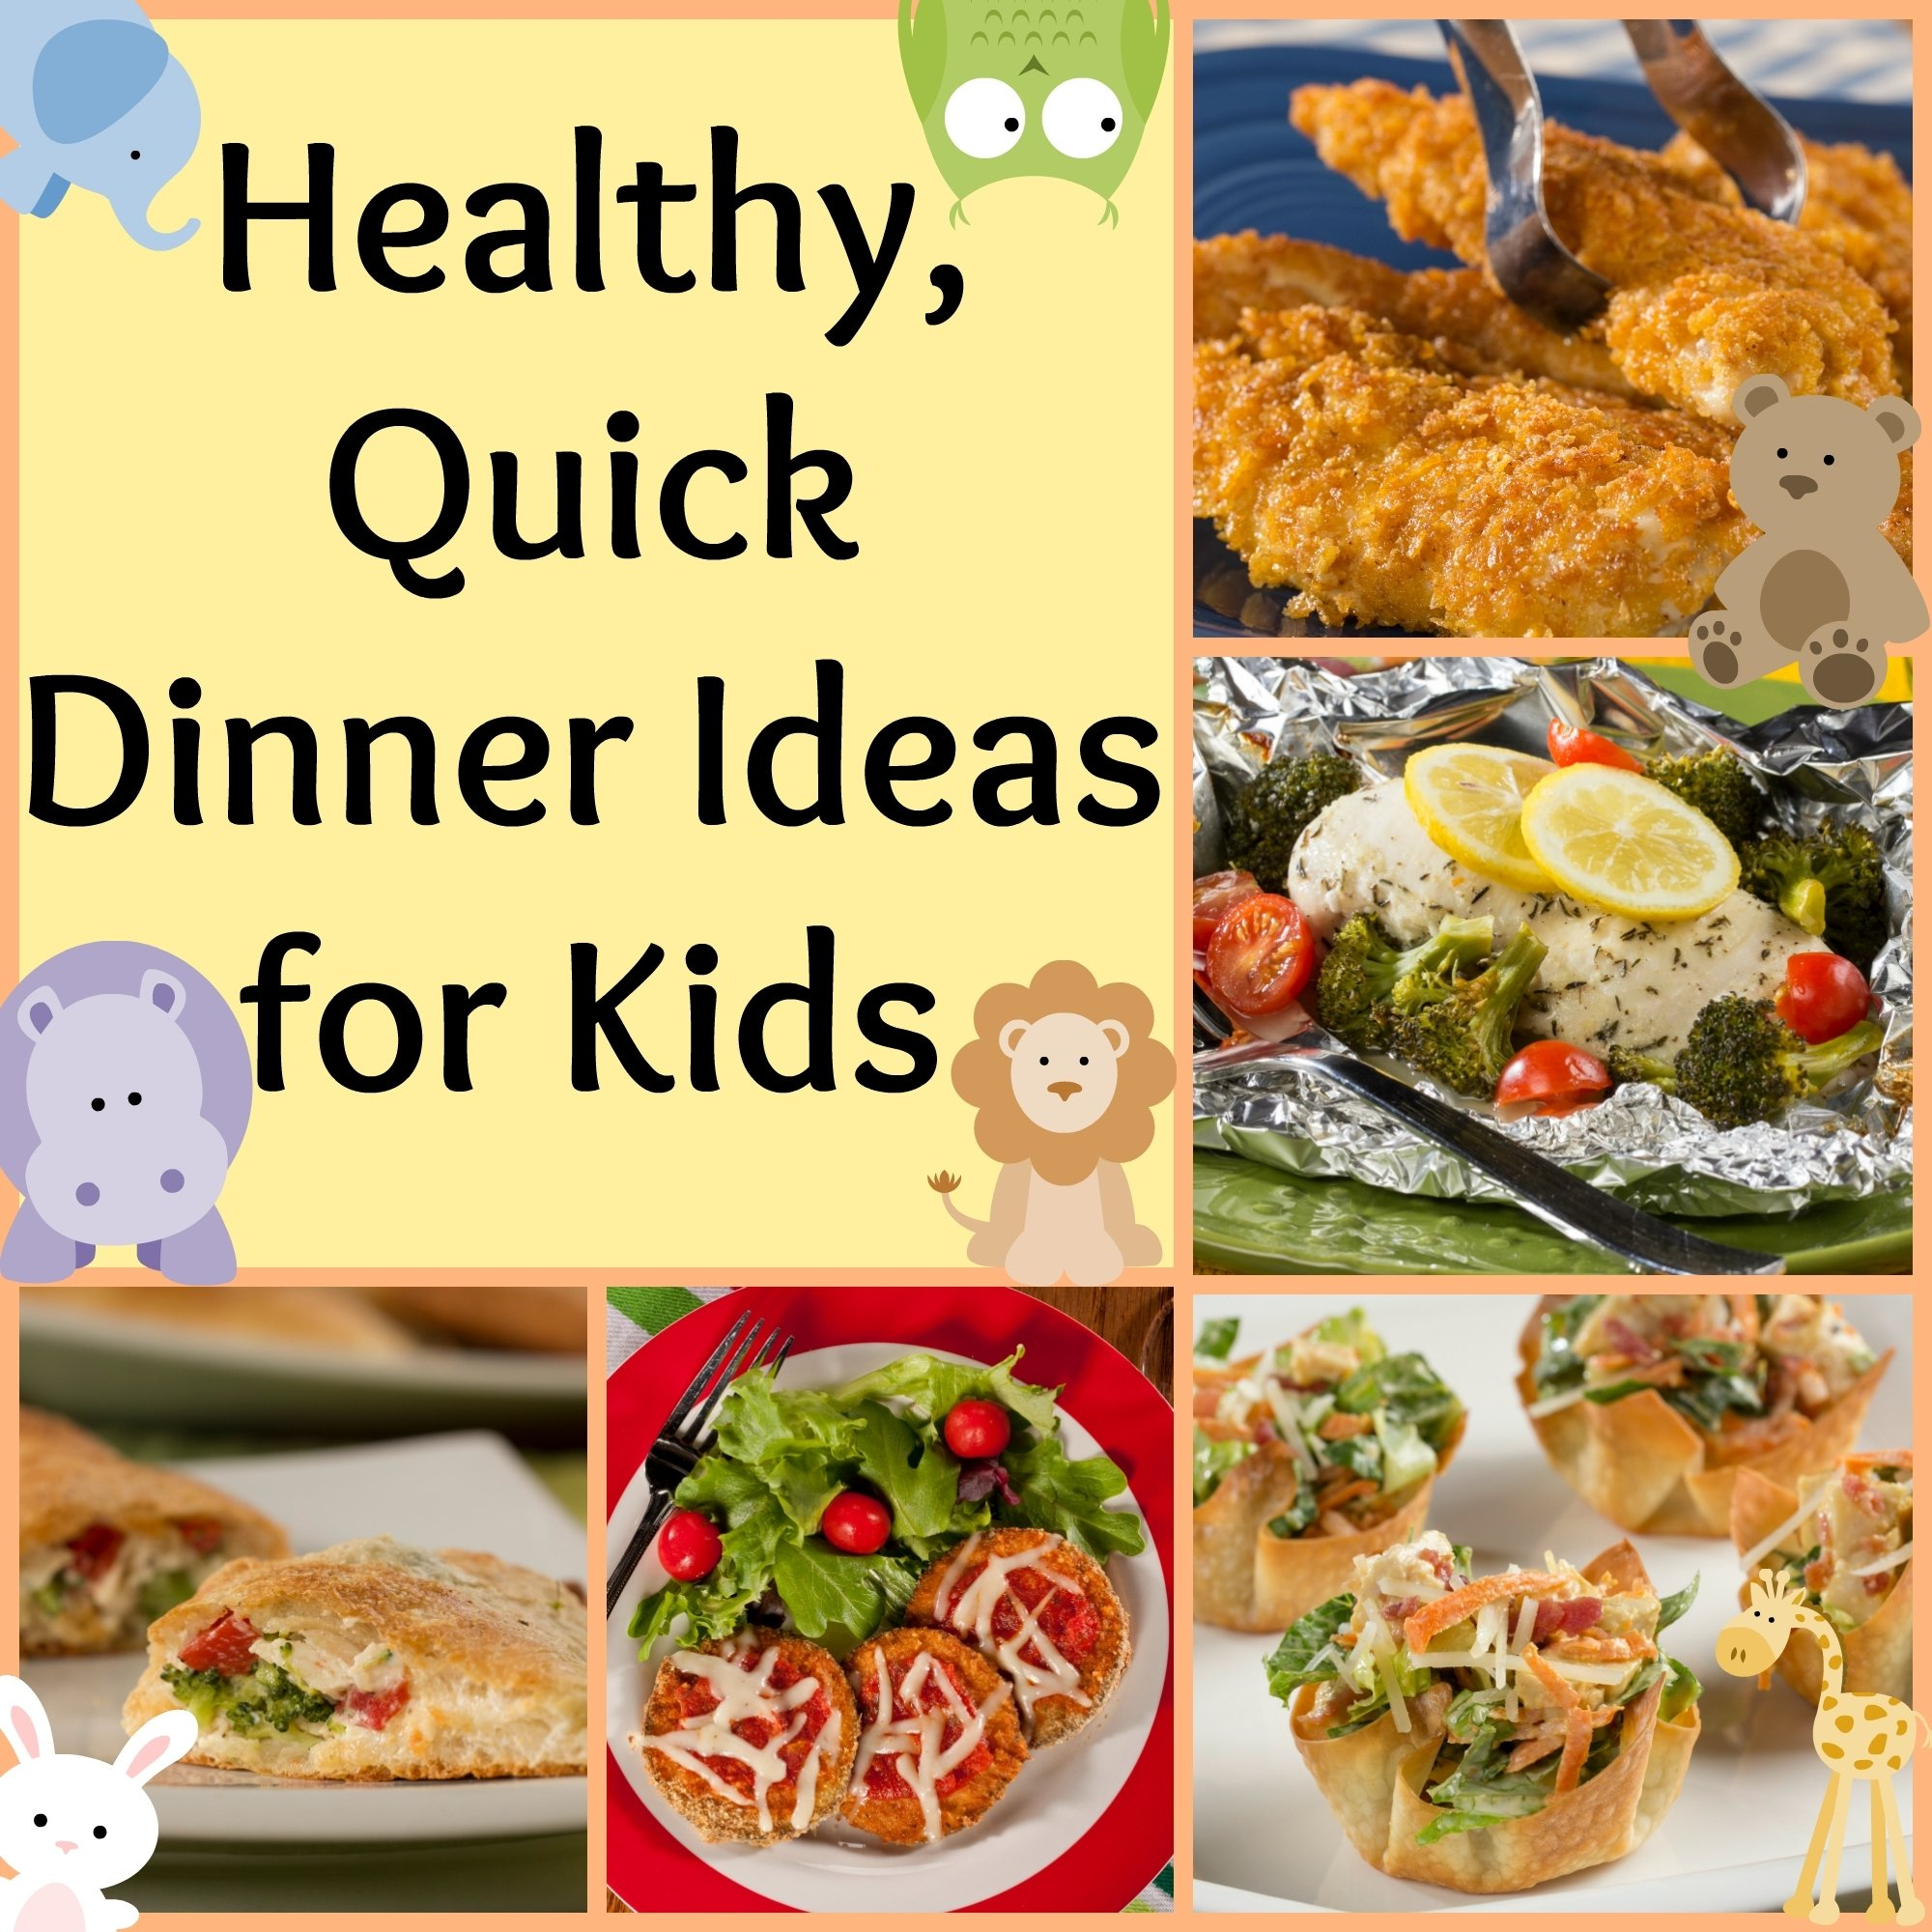 10 Ideal Ideas For A Quick Dinner healthy quick dinner ideas for kids mr foods blog 2020